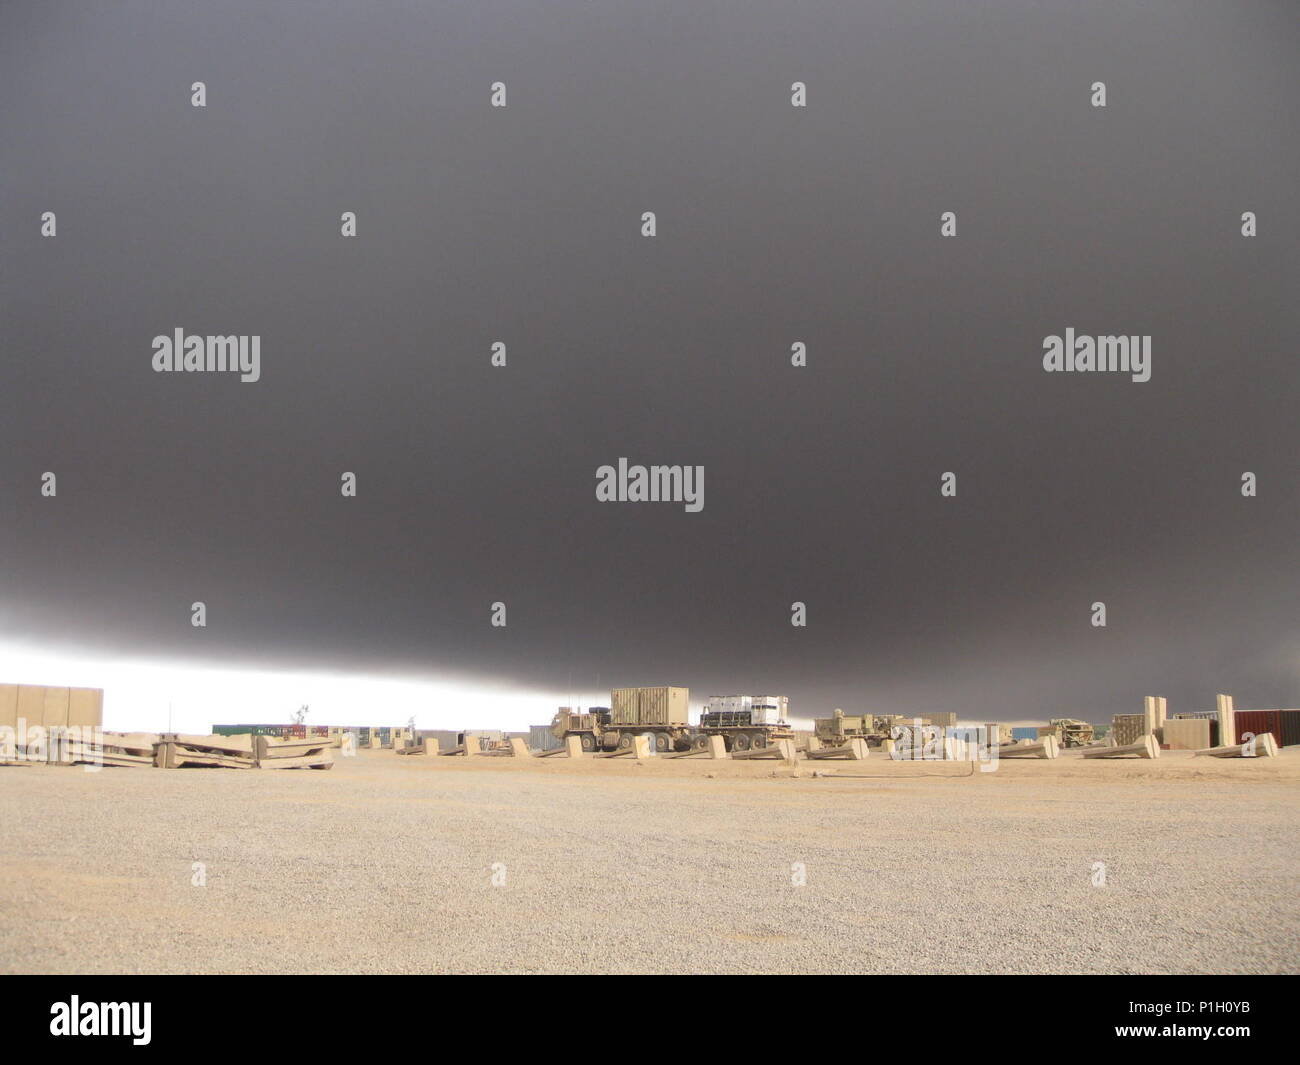 Sulphur dioxide from a fire at the Al-Mishraq sulfur plant travels over Qayyarah Airfield West, Iraq, Oct. 25, 2016. Marines with an Advise and Assist Team with the Special Purpose Marine Air-Ground Task Force-Crisis Response-Central Command were deployed to the area when the fire was burning. The Marines of the A&A Team were able to overcome these conditions and continue operating due to their CBRN training. U.S. Marines receive this training throughout their careers and before deploying in order to effectively respond to an attack and continue accomplishing the mission. - Stock Image